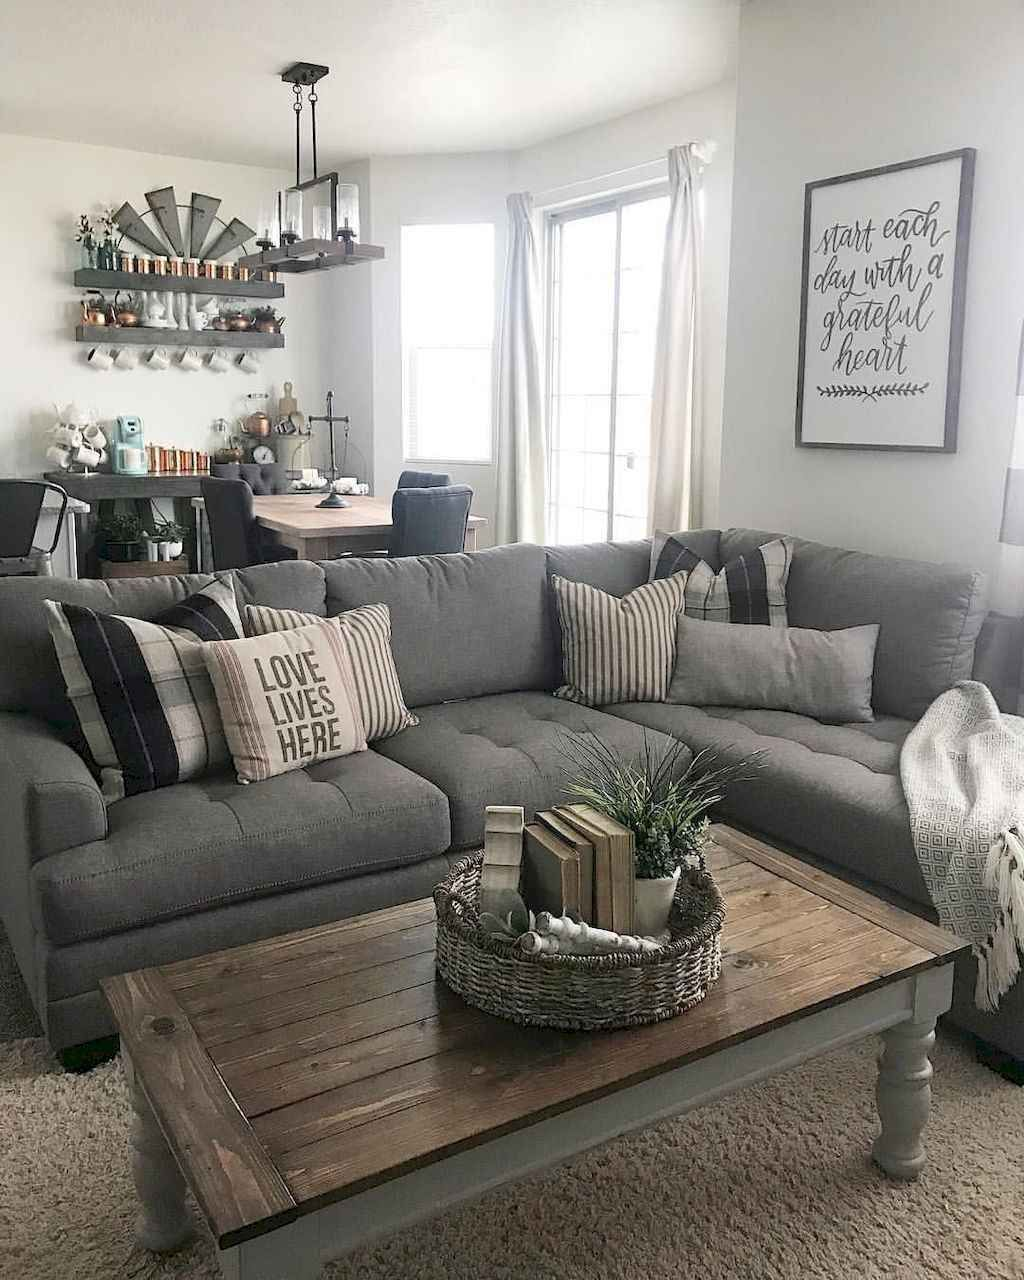 80 Inspiring Farmhouse Living Room Design Ideas Farmhouse Decor Living Room Small Living Room Design Farm House Living Room